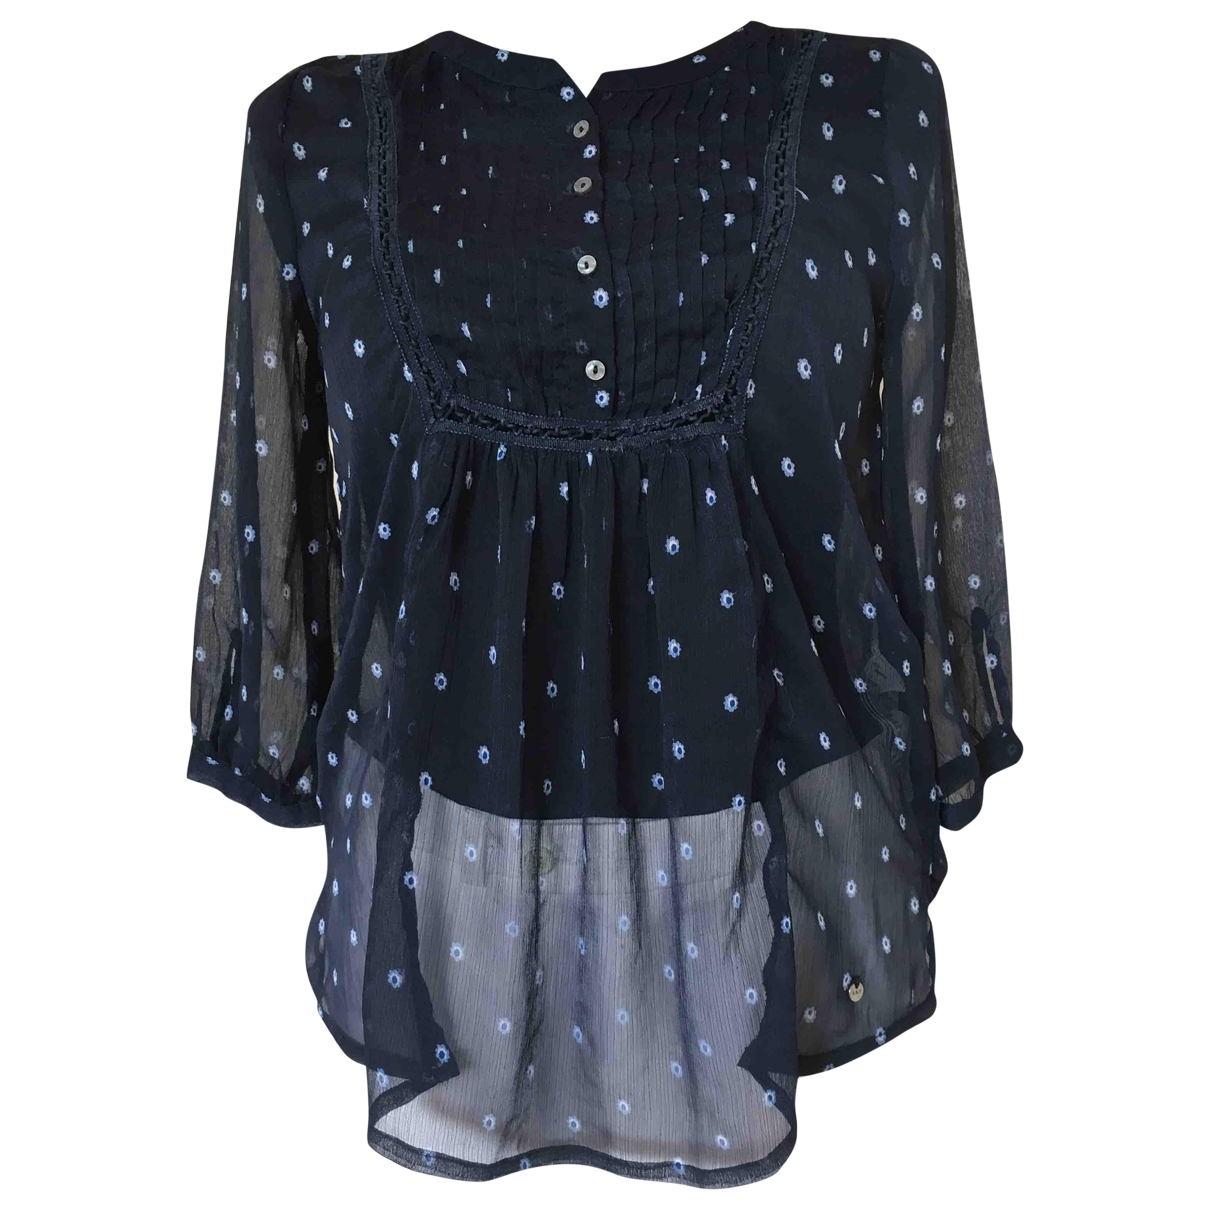 Abercrombie & Fitch \N Blue  top for Women XS International